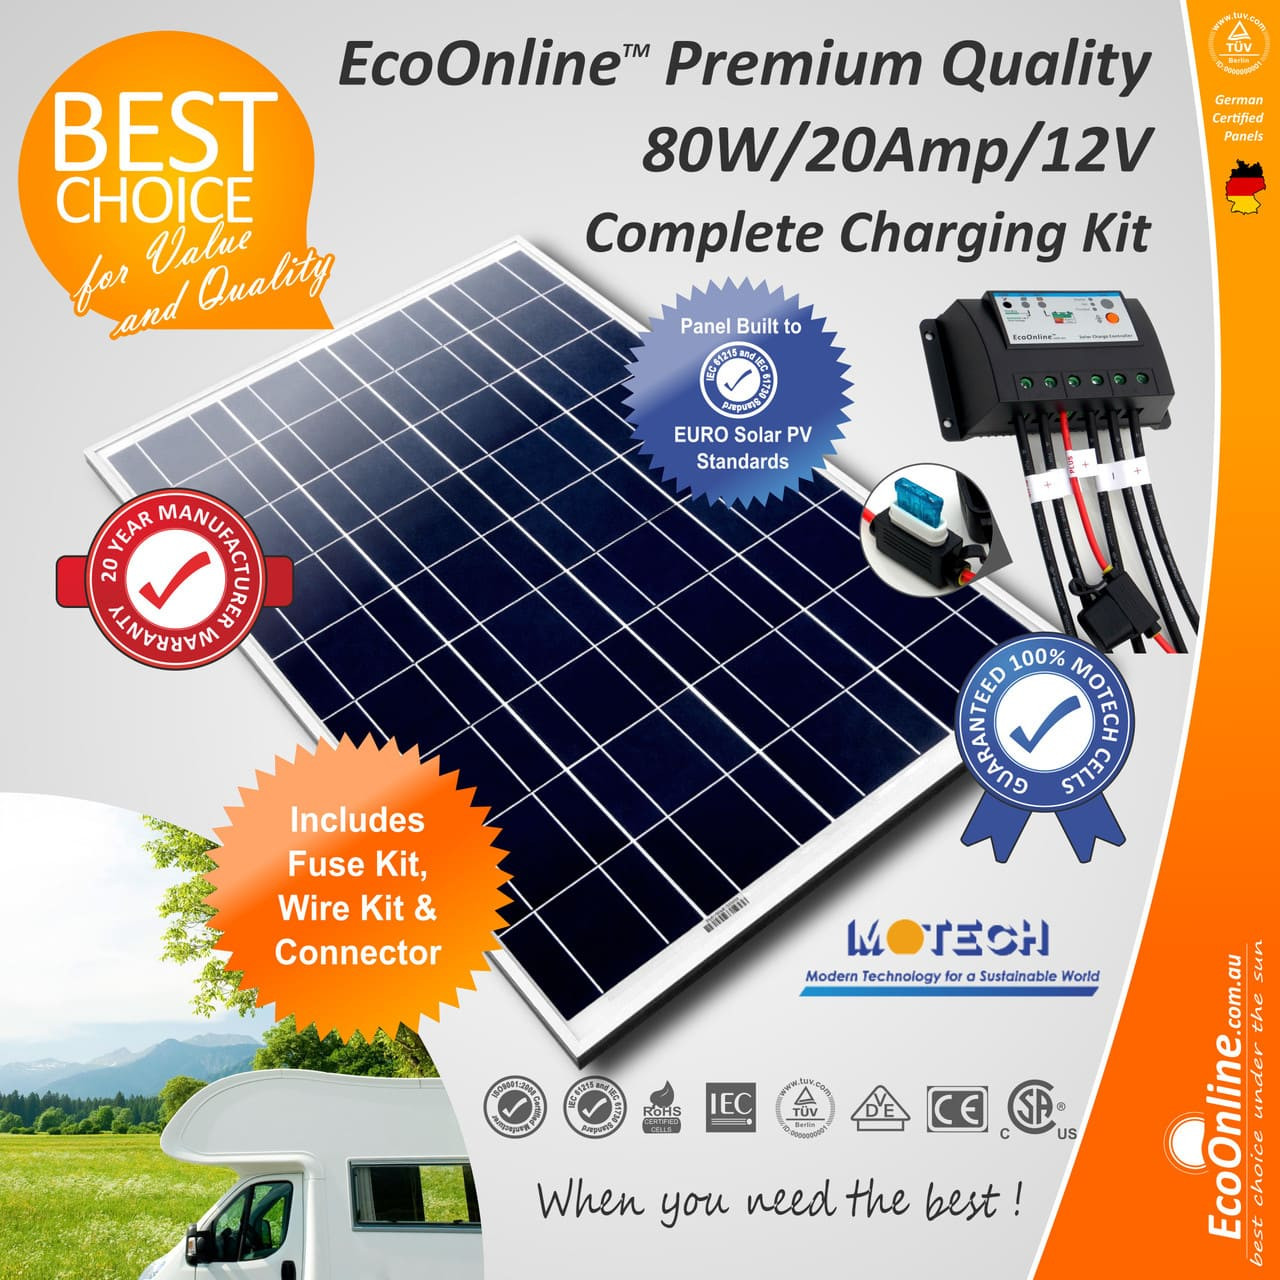 Solar Battery Charging Kit 80w Panel 20amp Ecoonline Image 1